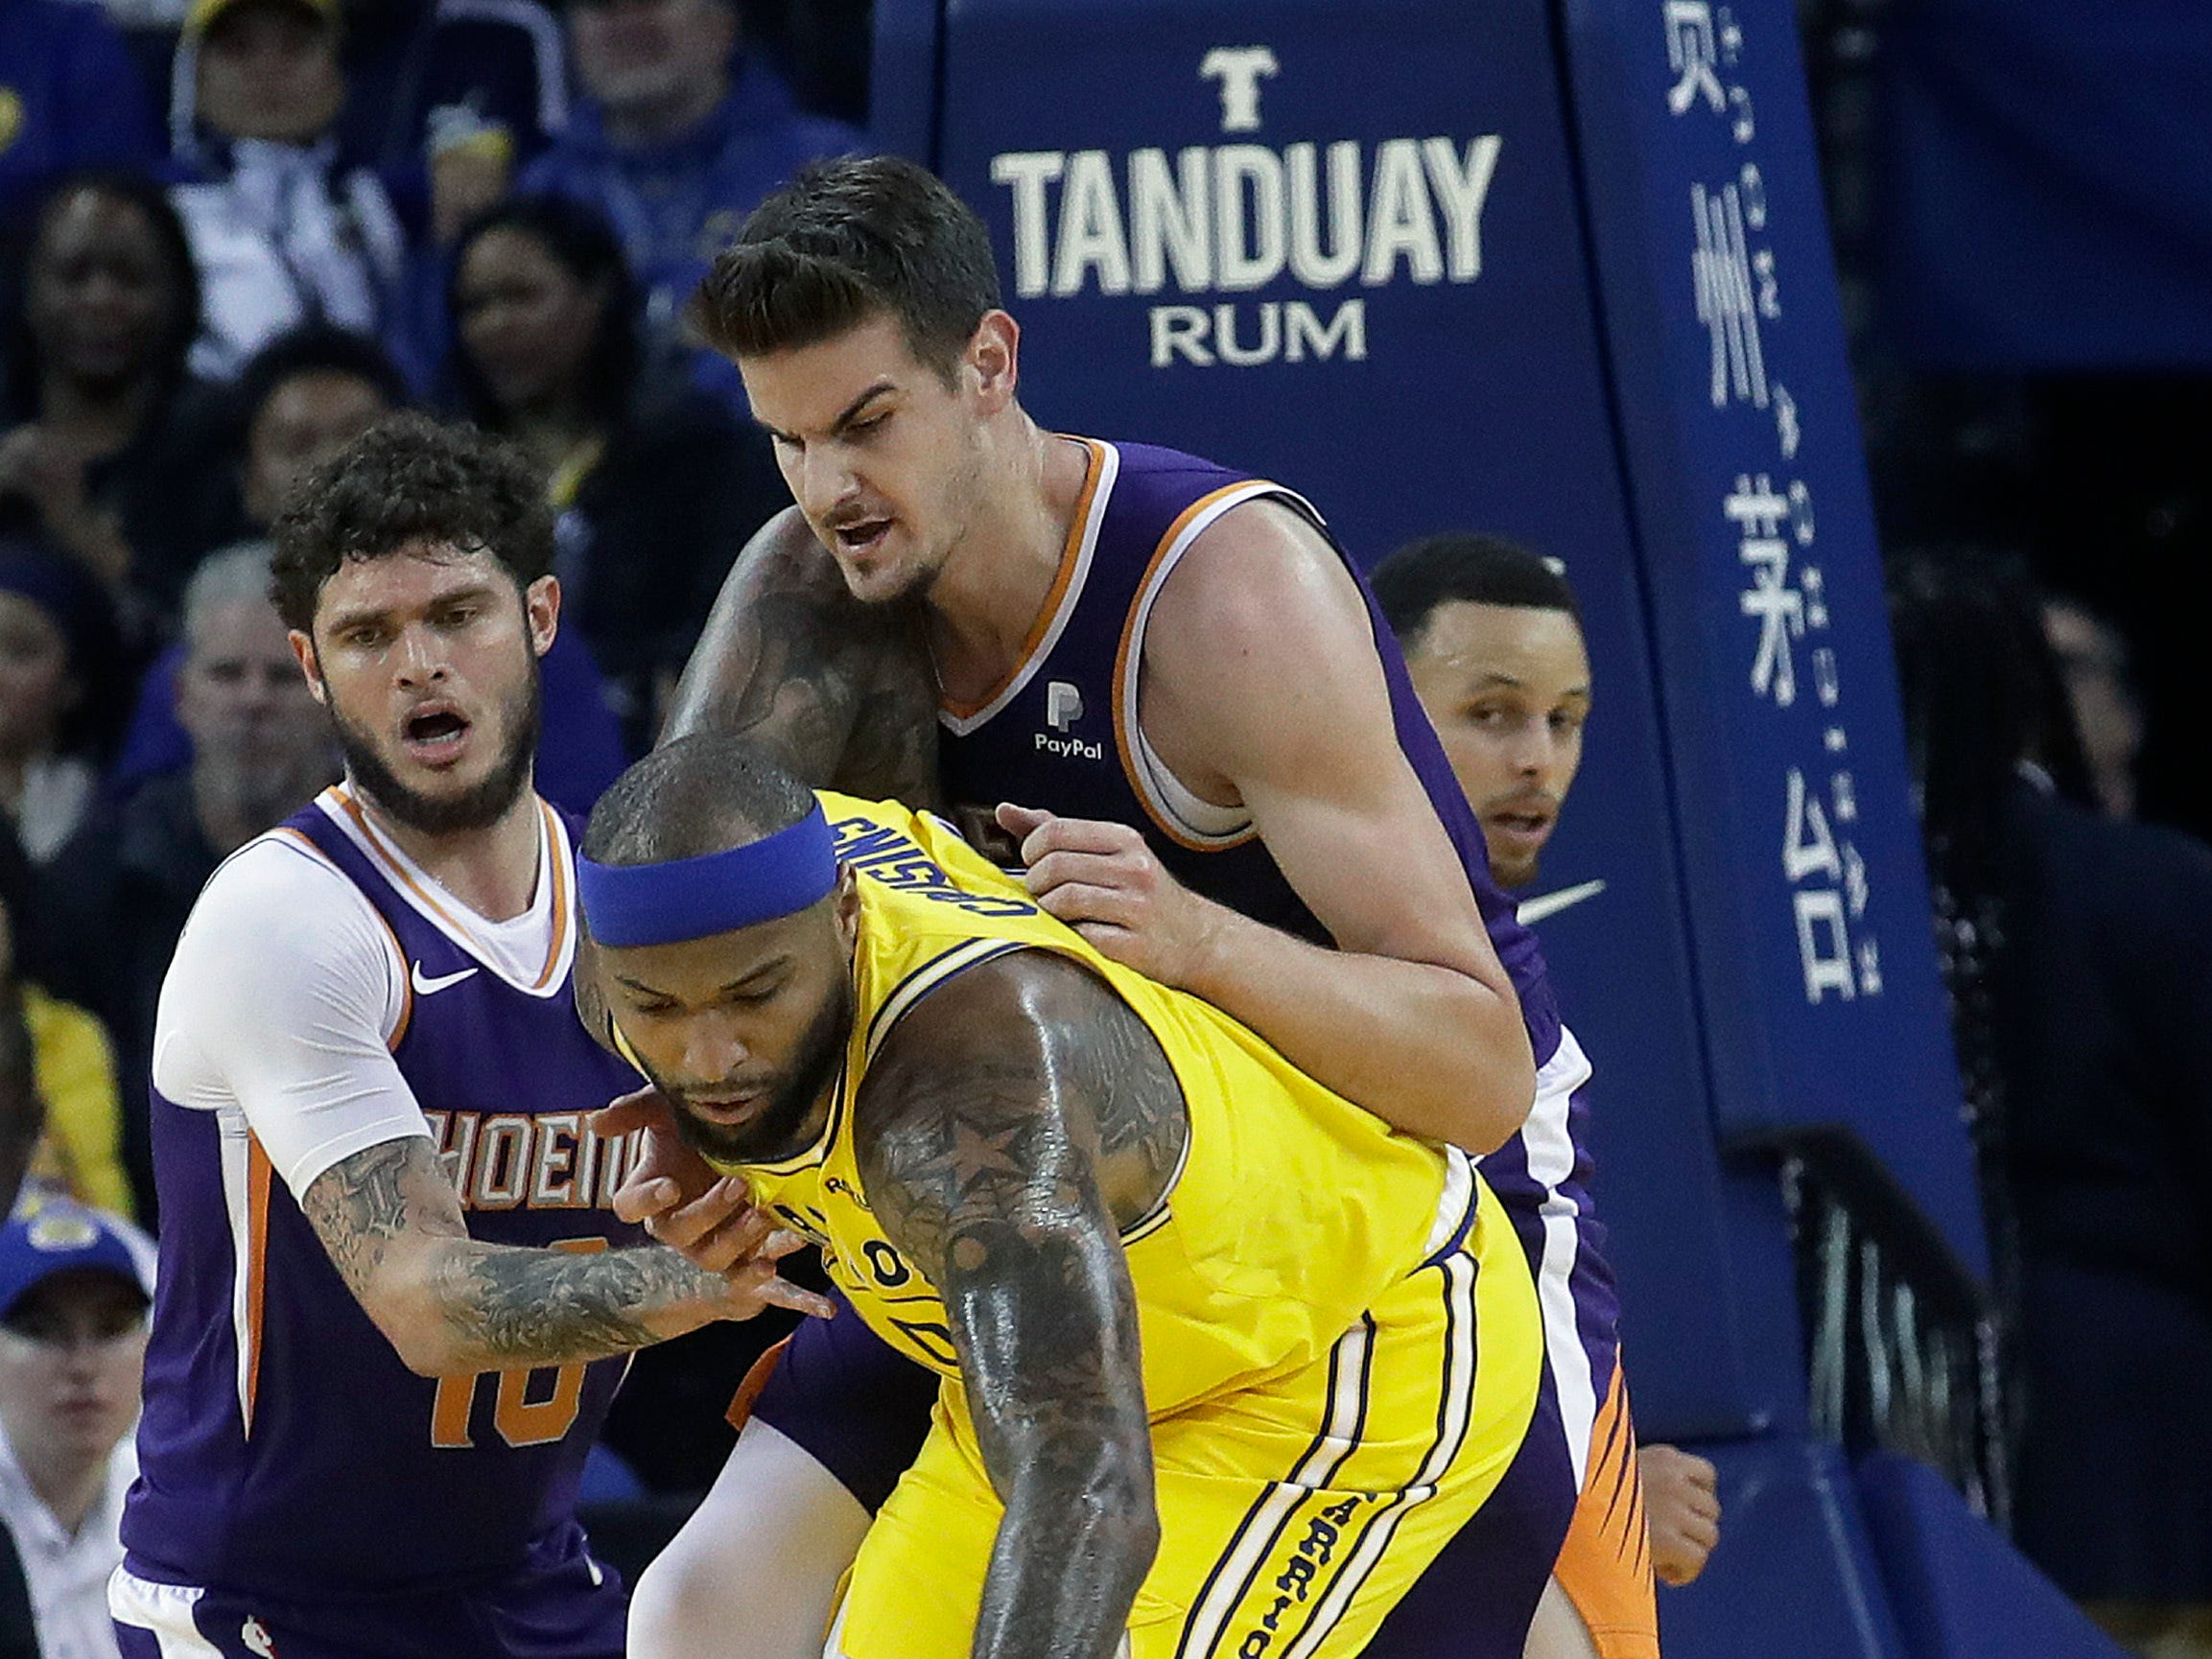 Golden State Warriors center DeMarcus Cousins, center, reaches for the ball in front of Phoenix Suns guard Tyler Johnson, left, and forward Dragan Bender during the first half of an NBA basketball game in Oakland, Calif., Sunday, March 10, 2019. (AP Photo/Jeff Chiu)